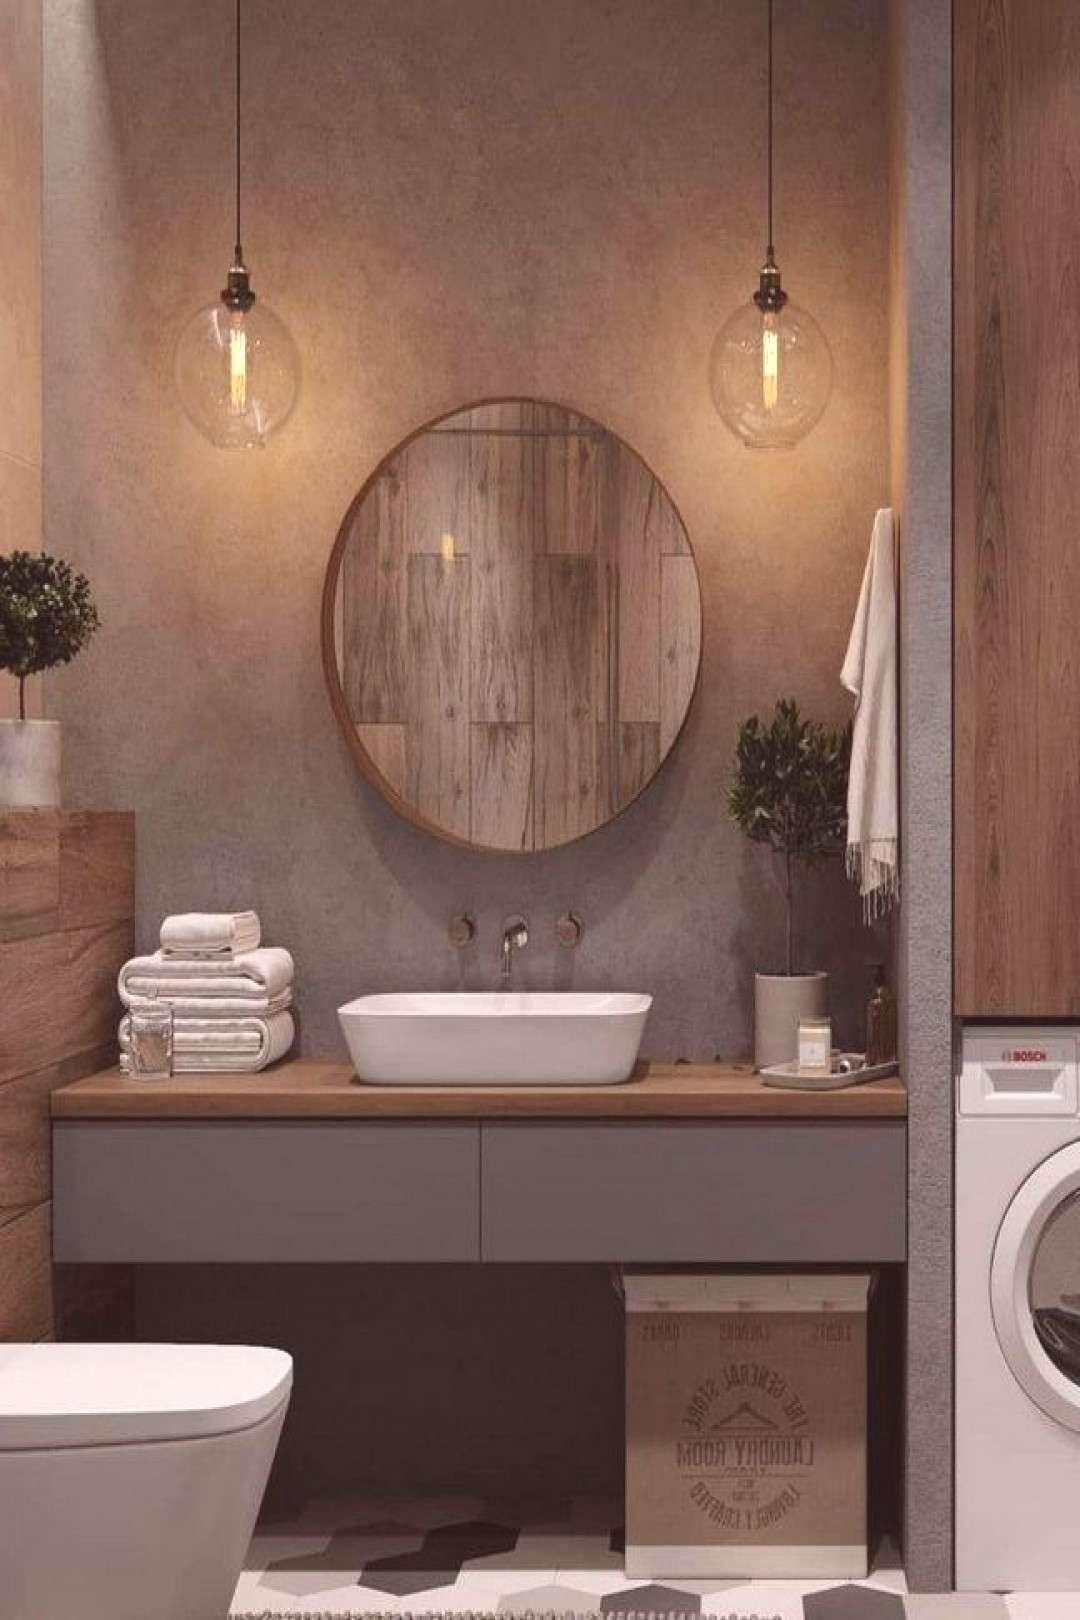 +16 One of the Most Overlooked Options for Contemporary Bathroom Leafy Wallpaper - walmartbytes